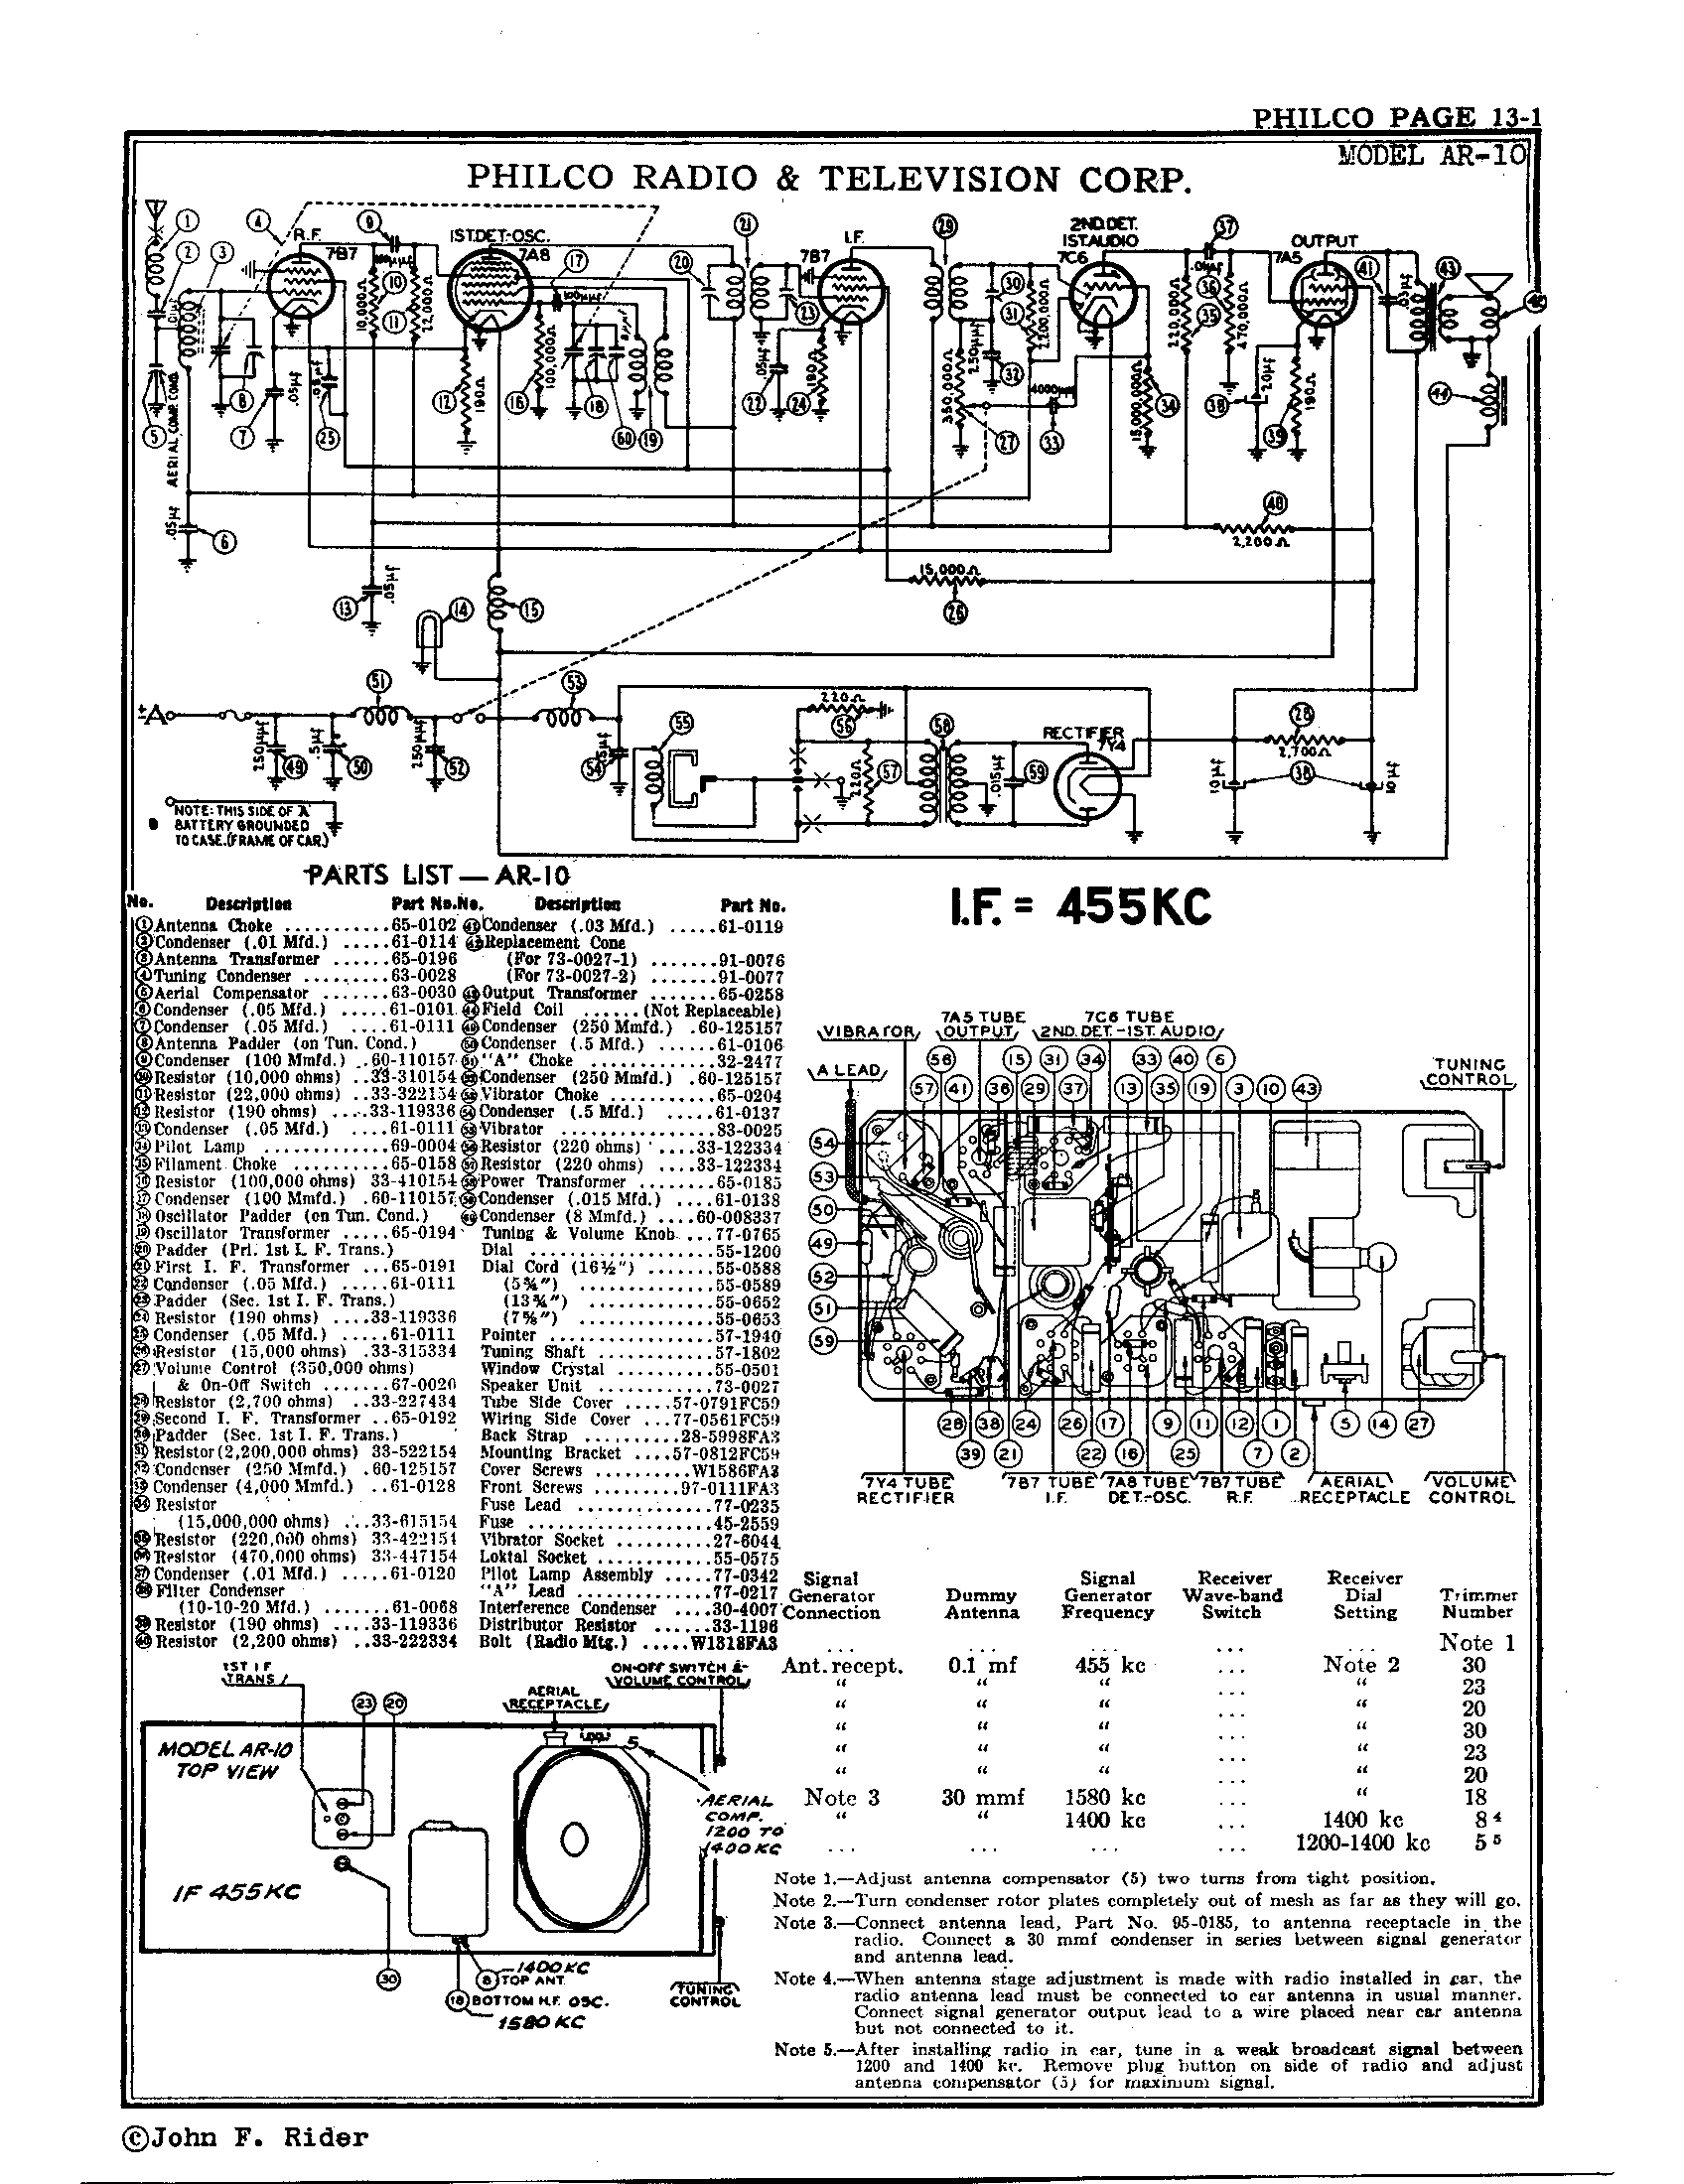 Diagram Of Ar 10 Great Installation Wiring Radio Schematic Diagrams Moreover Philco As Television Corp Antique Electronic Supply Rh Tubesandmore Com A 3600 215t Motor 100 Amp Outdoor Sub Panel